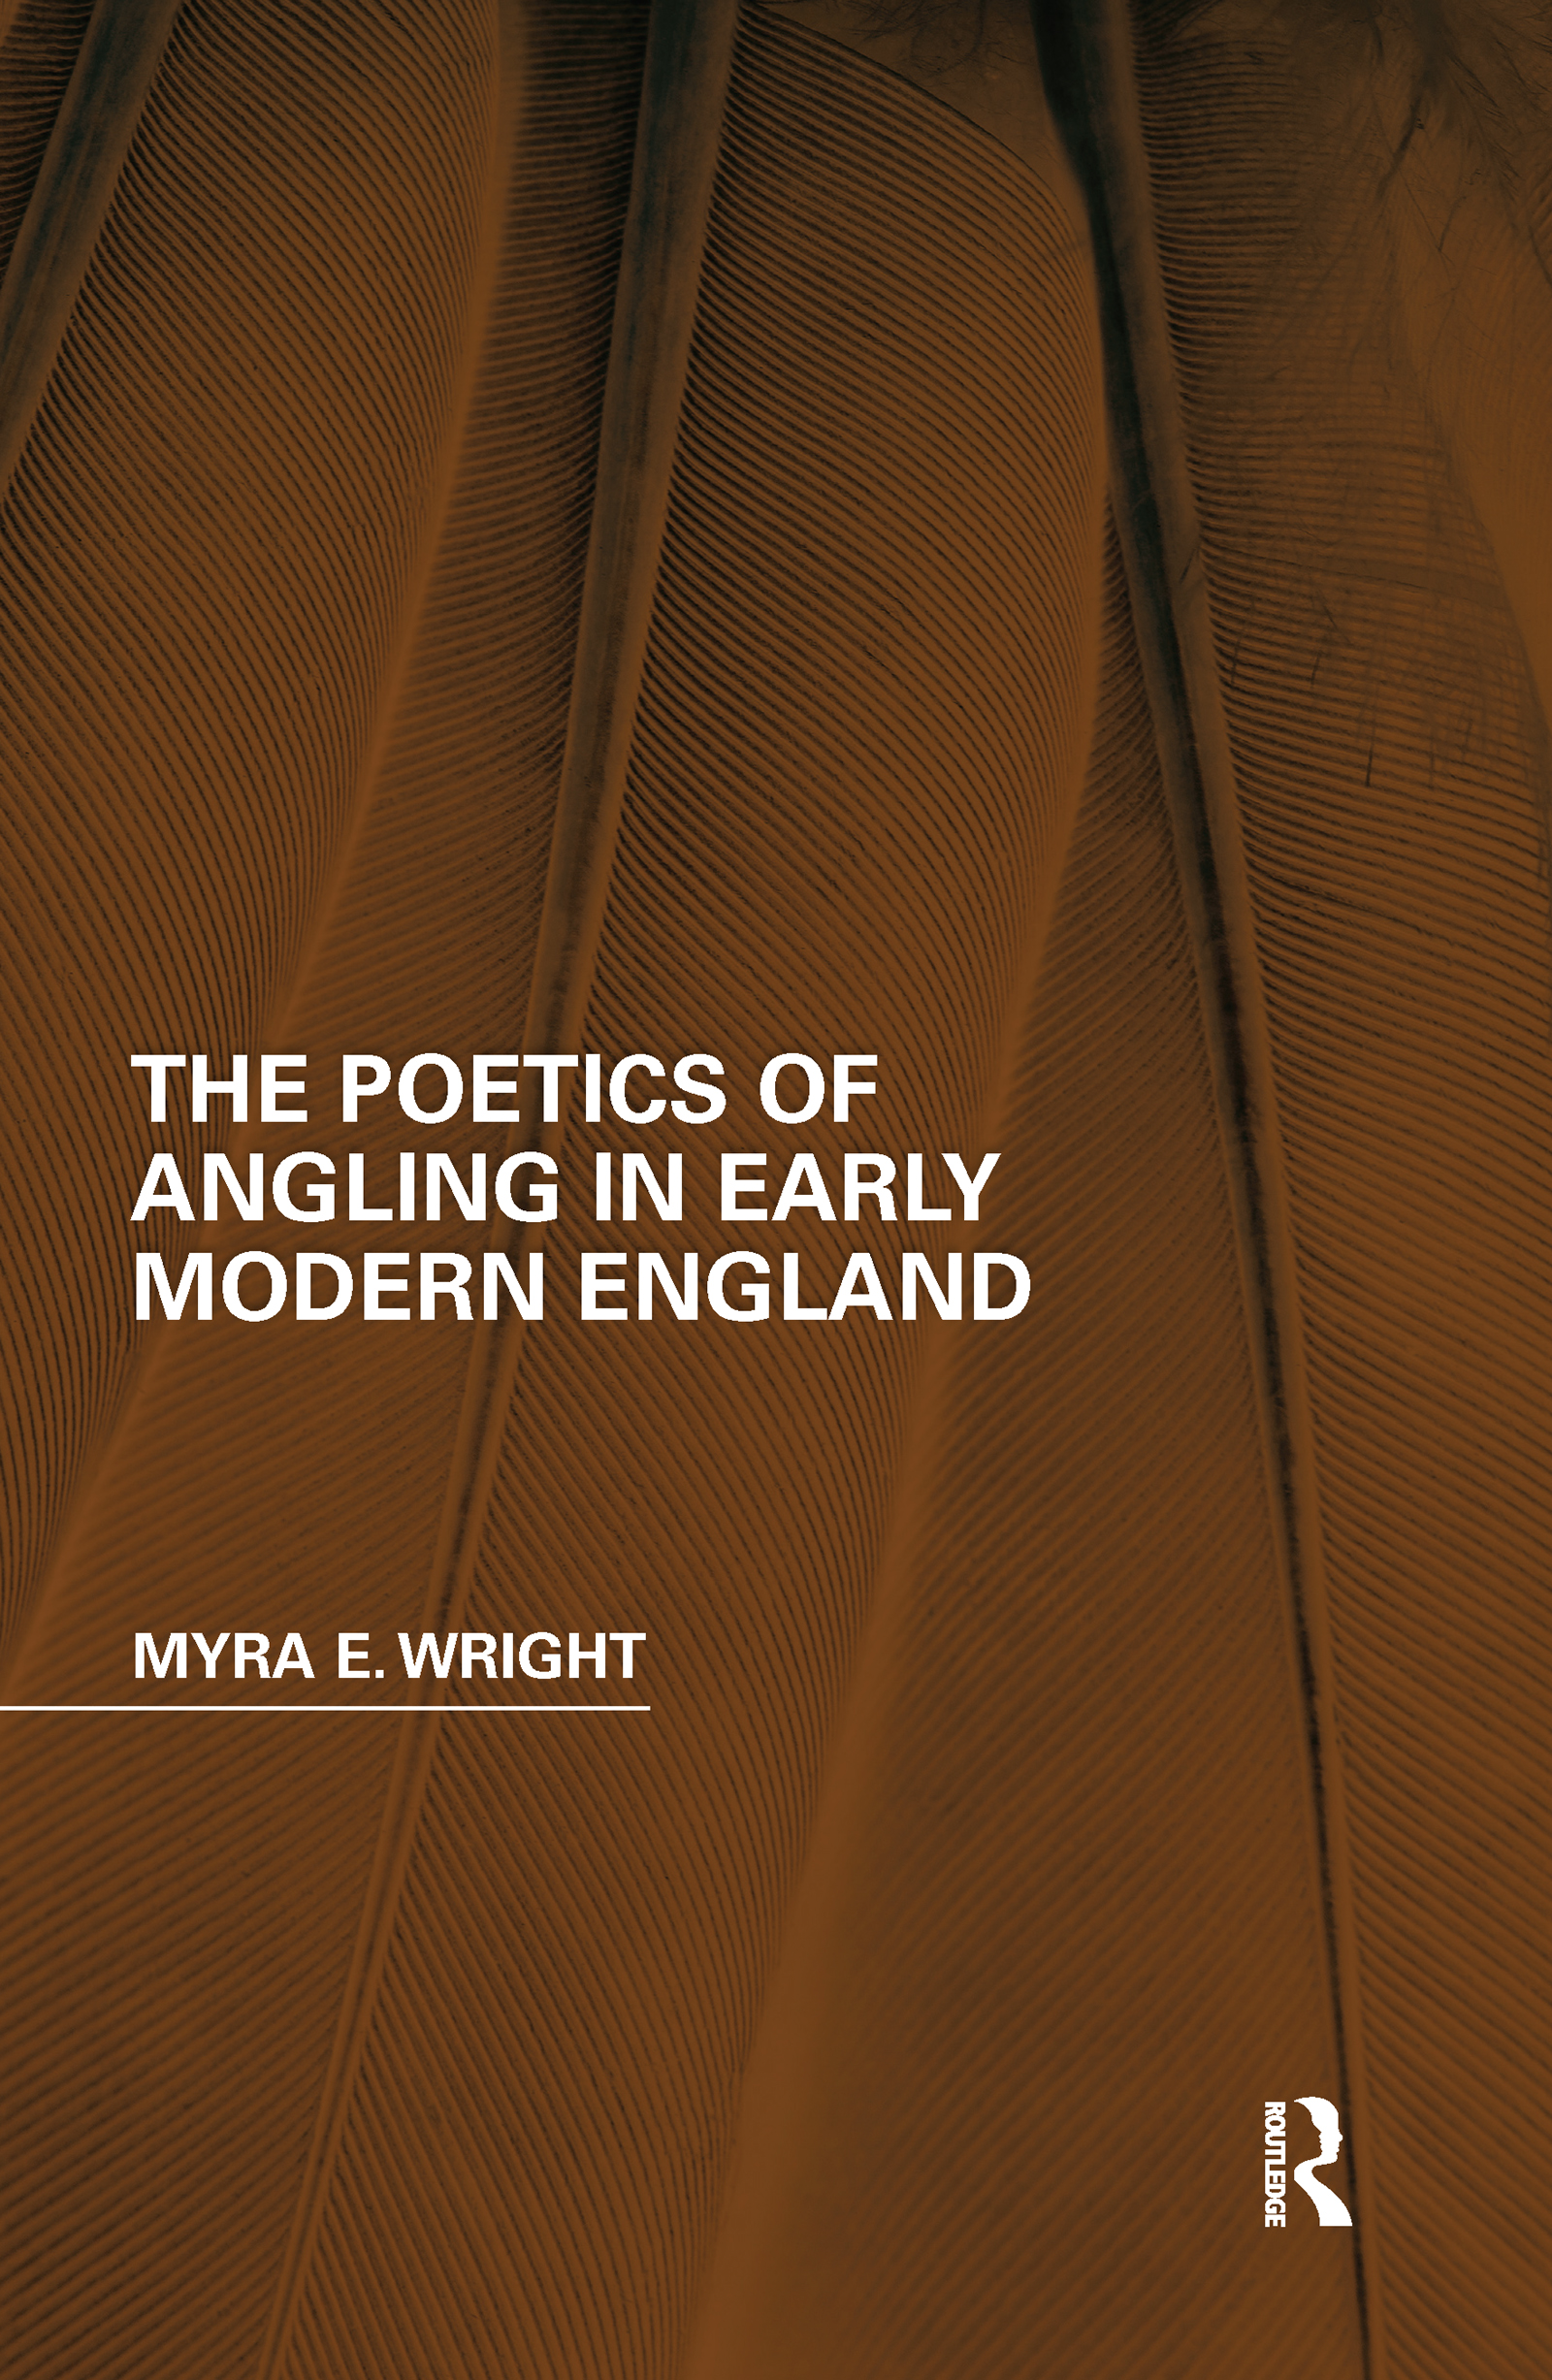 The Poetics of Angling in Early Modern England